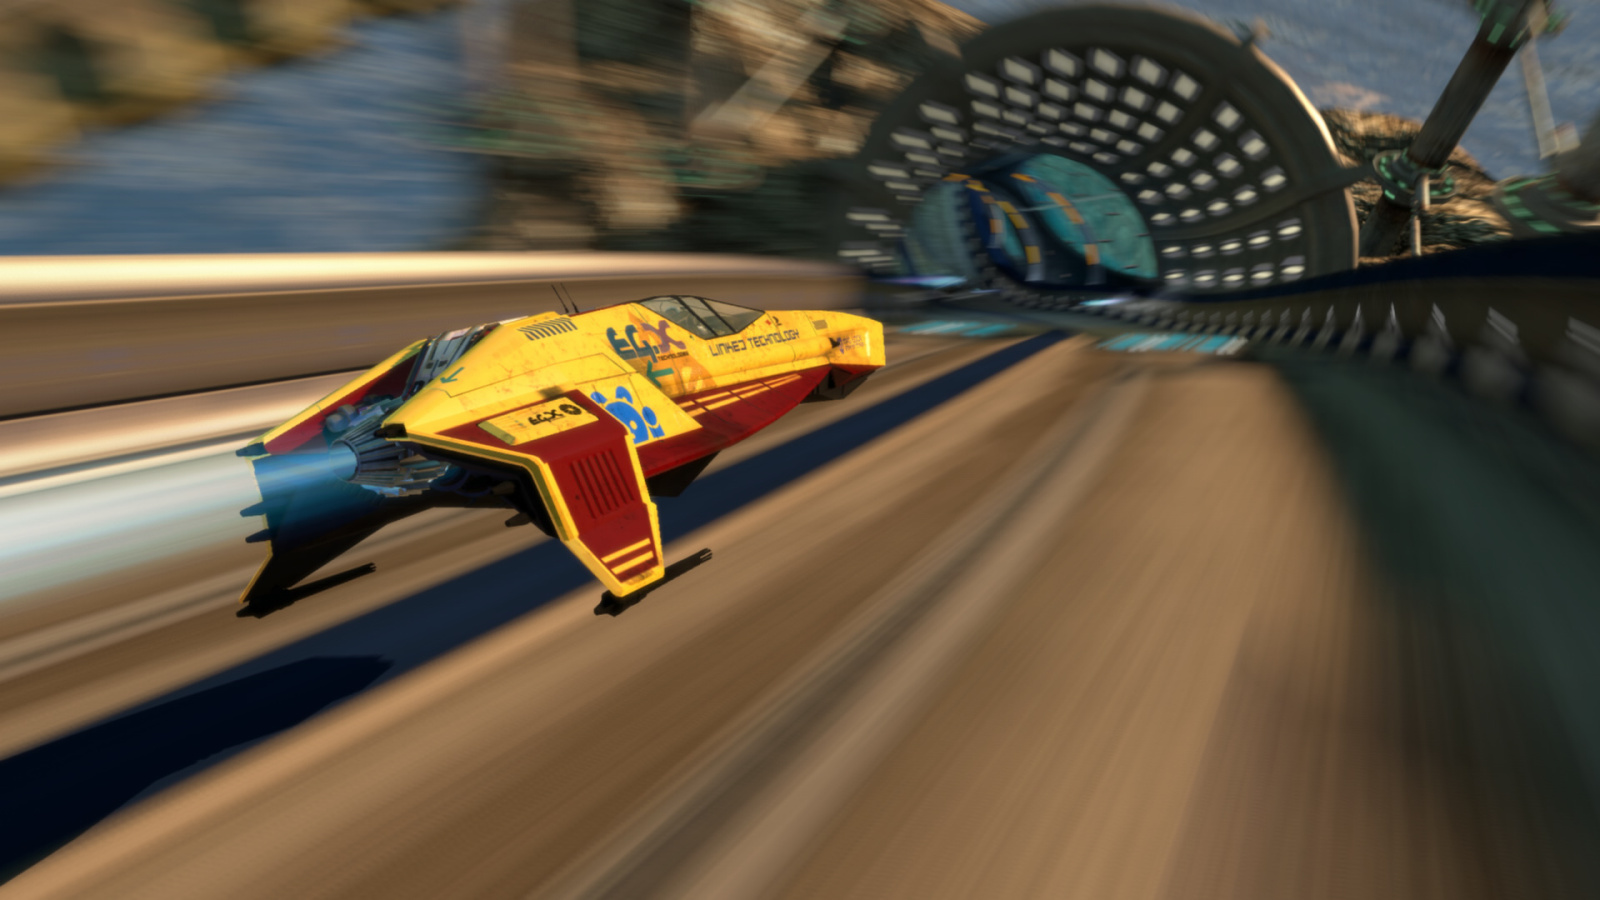 Wipeout 2048 Confirmed For Jan 2012